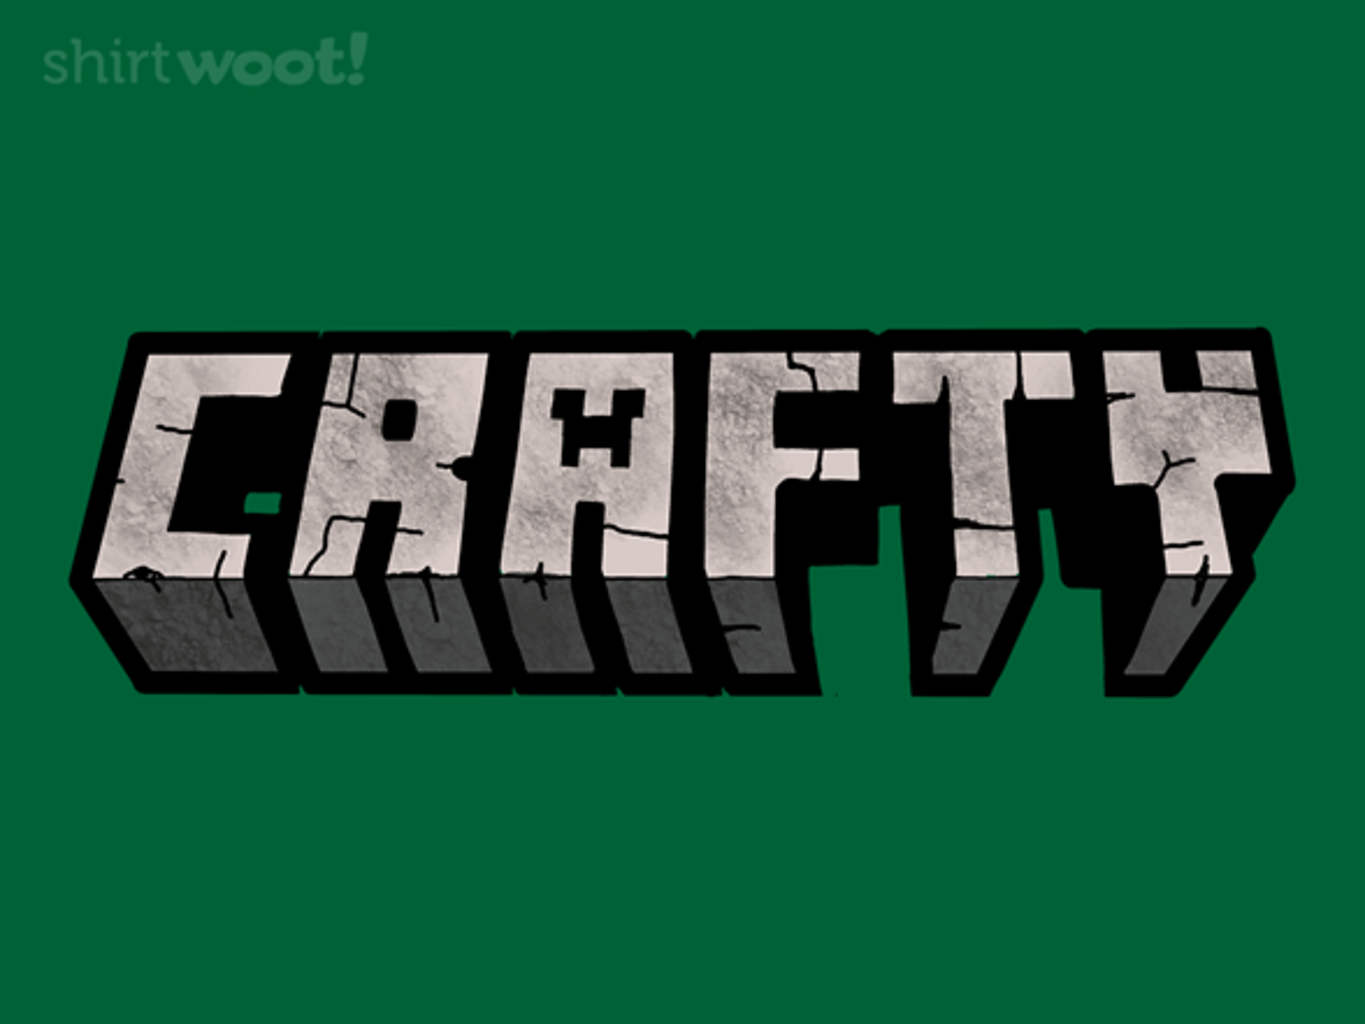 Woot!: Crafty - $15.00 + Free shipping